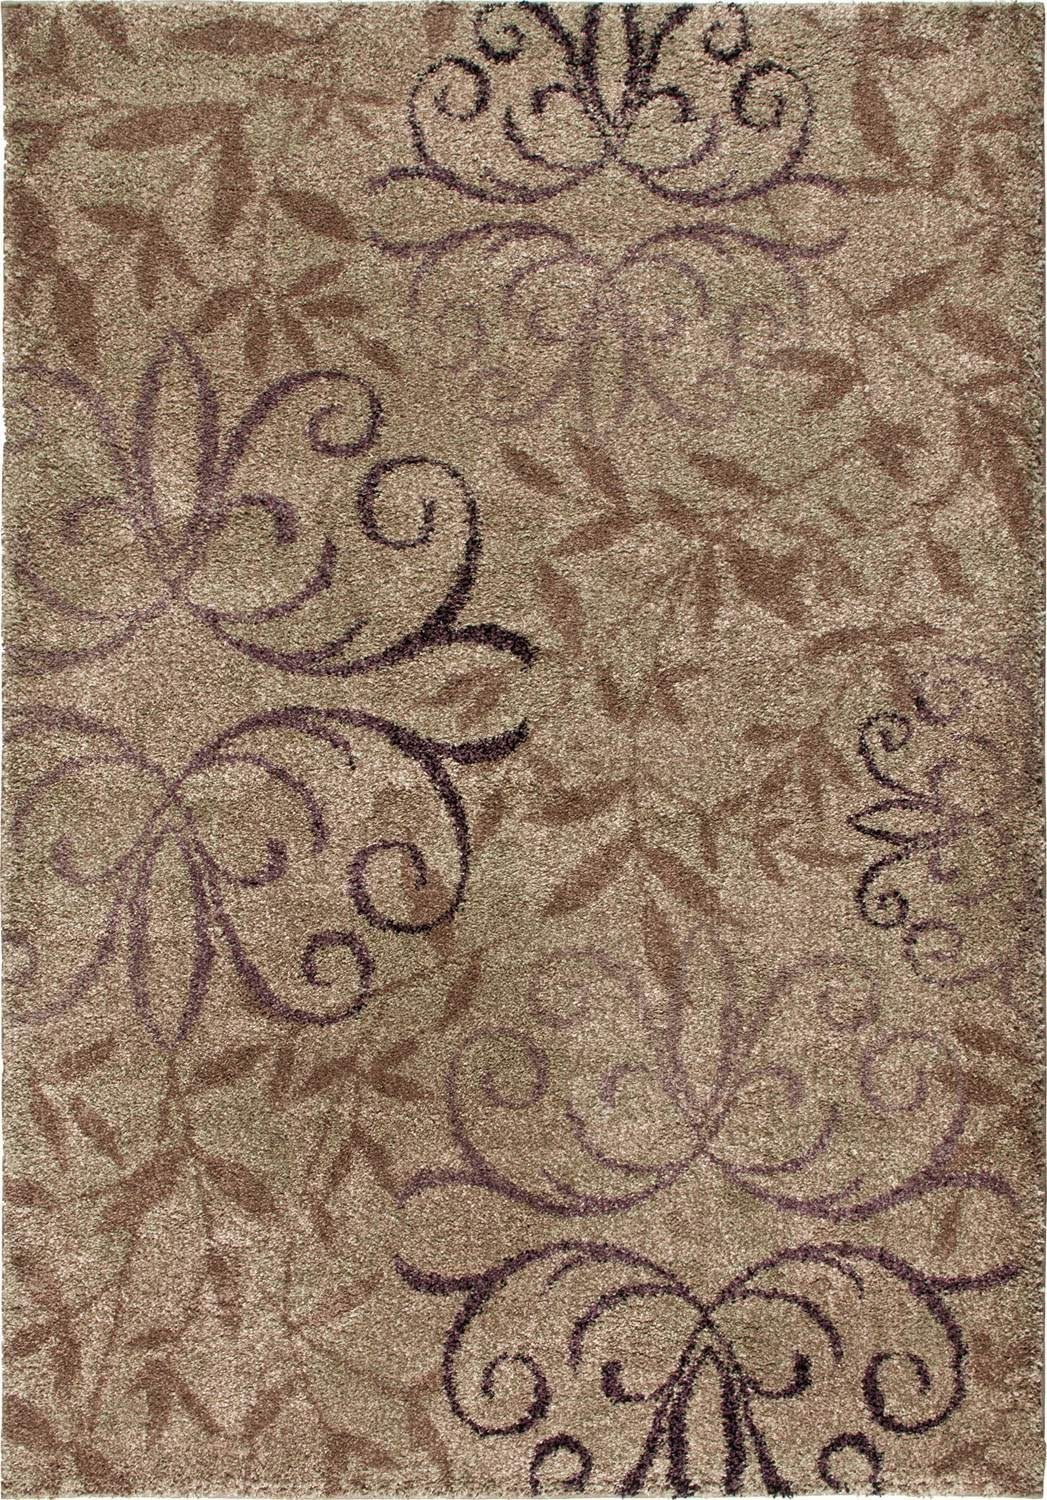 Orian Rugs Wild Weave 1607 Dorian Gold or Cream or Beige Rug for floor decor ideas